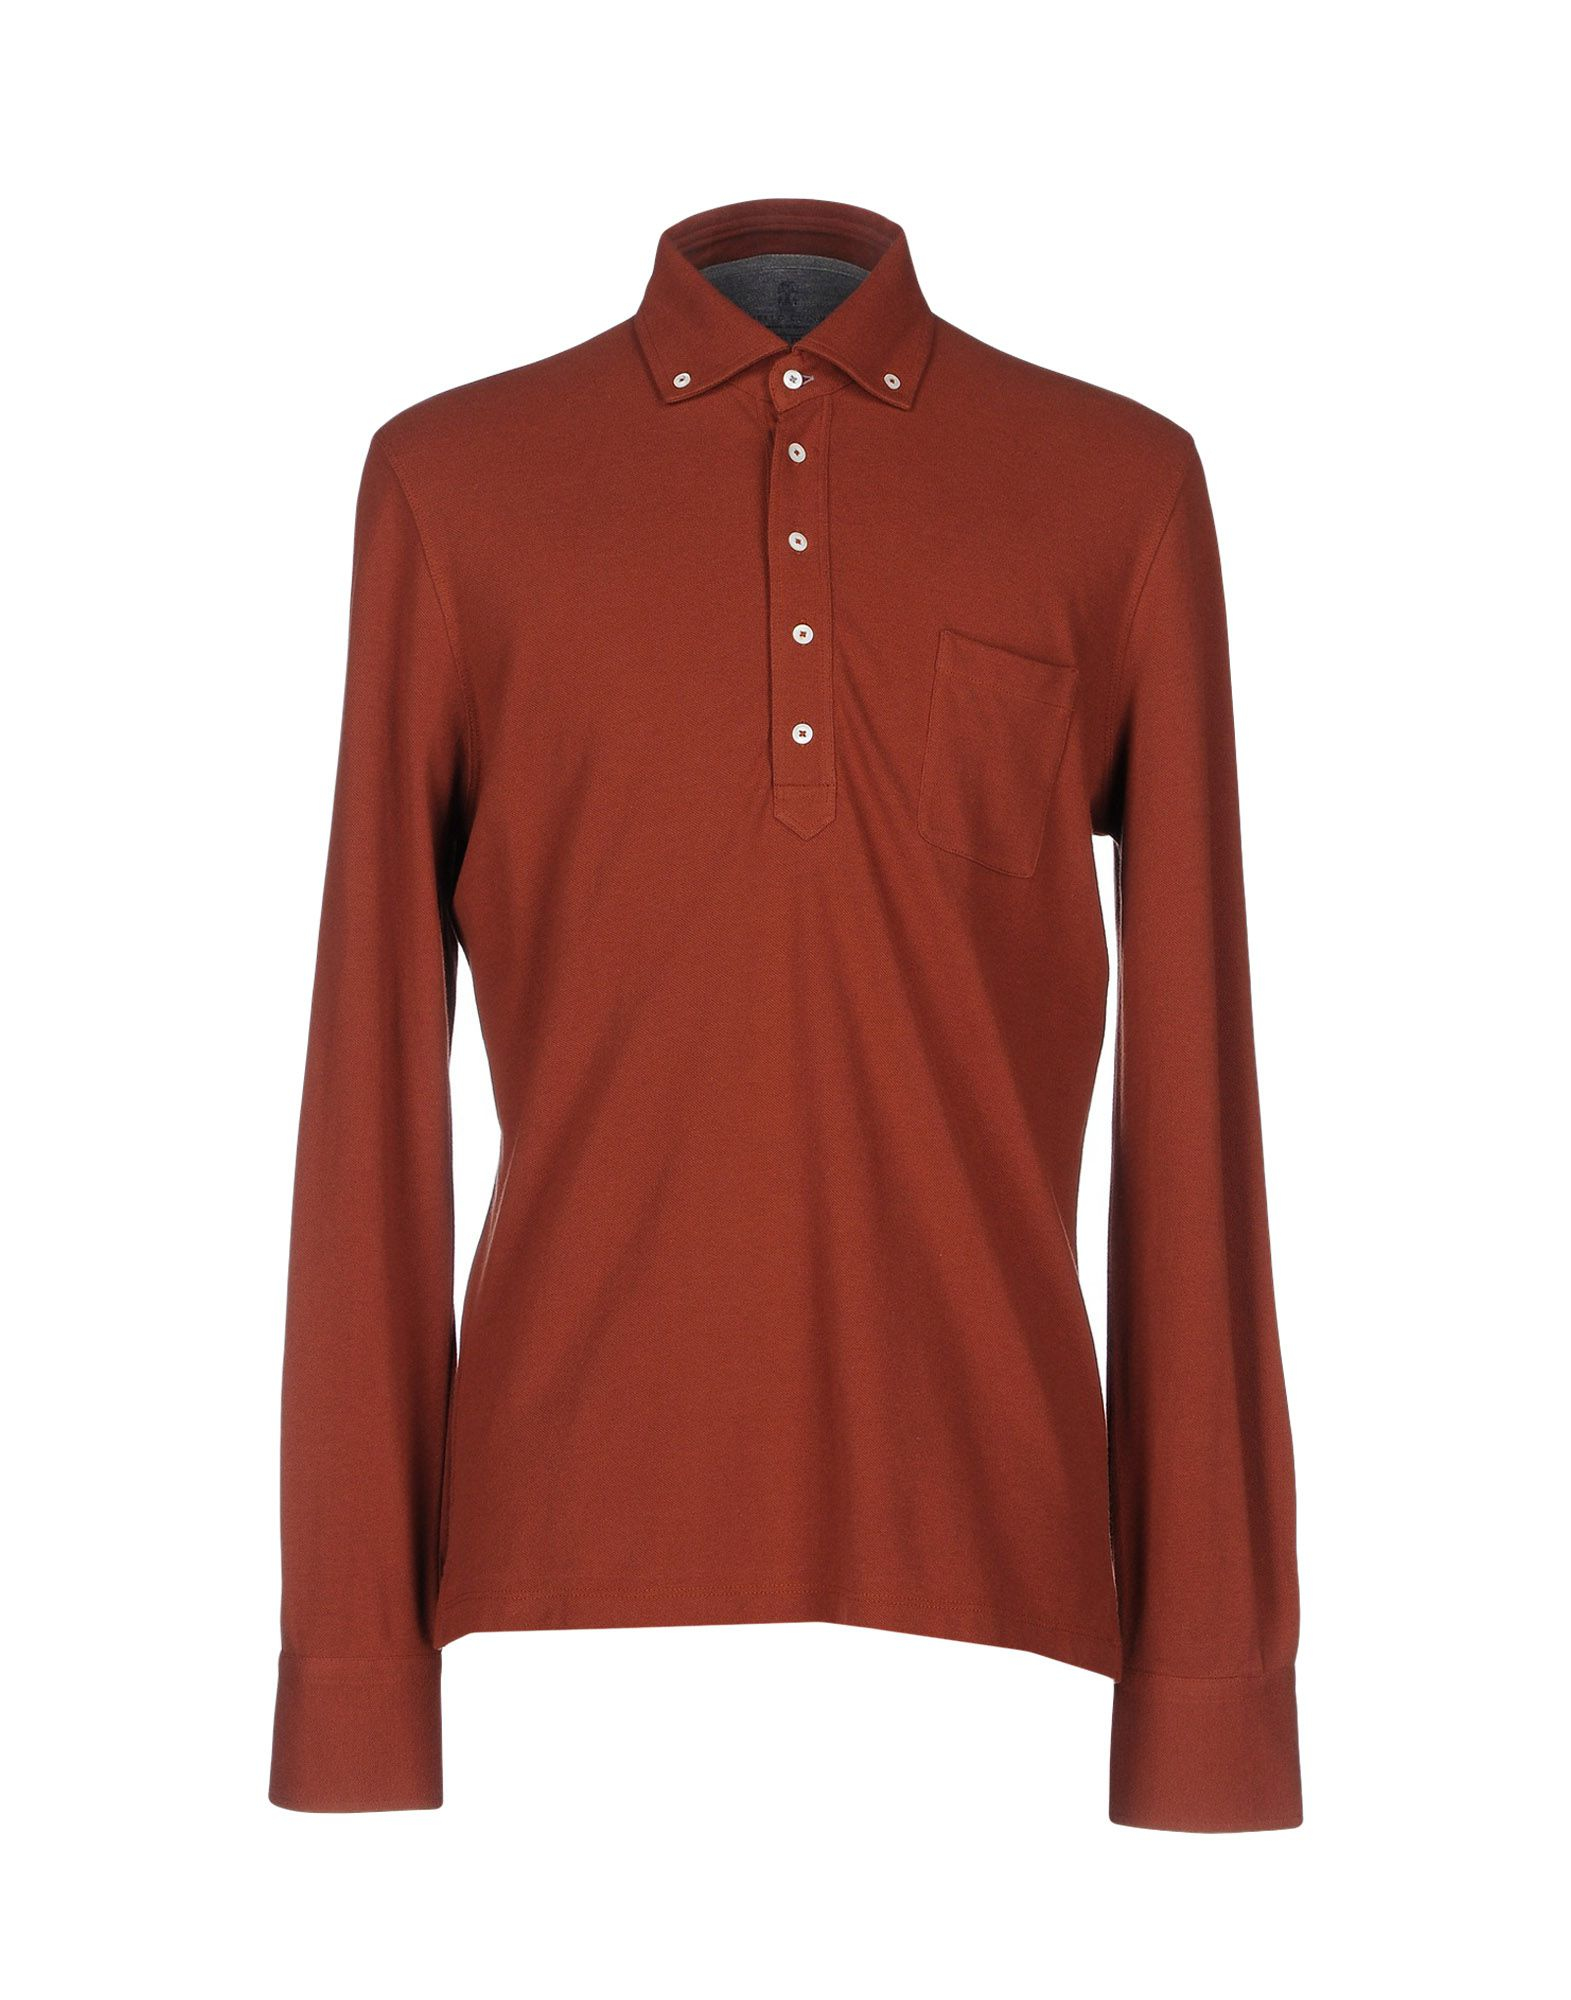 Lyst Brunello Cucinelli Polo Shirt In Brown For Men